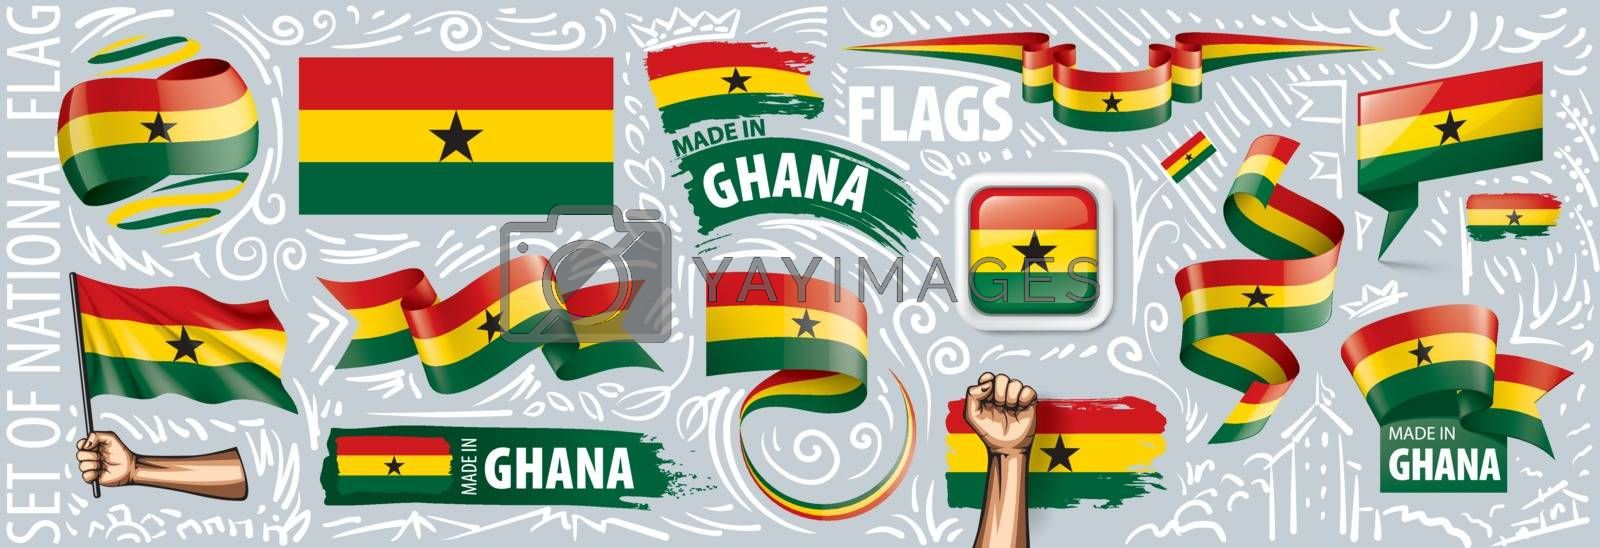 Vector set of the national flag of Ghana in various creative designs.